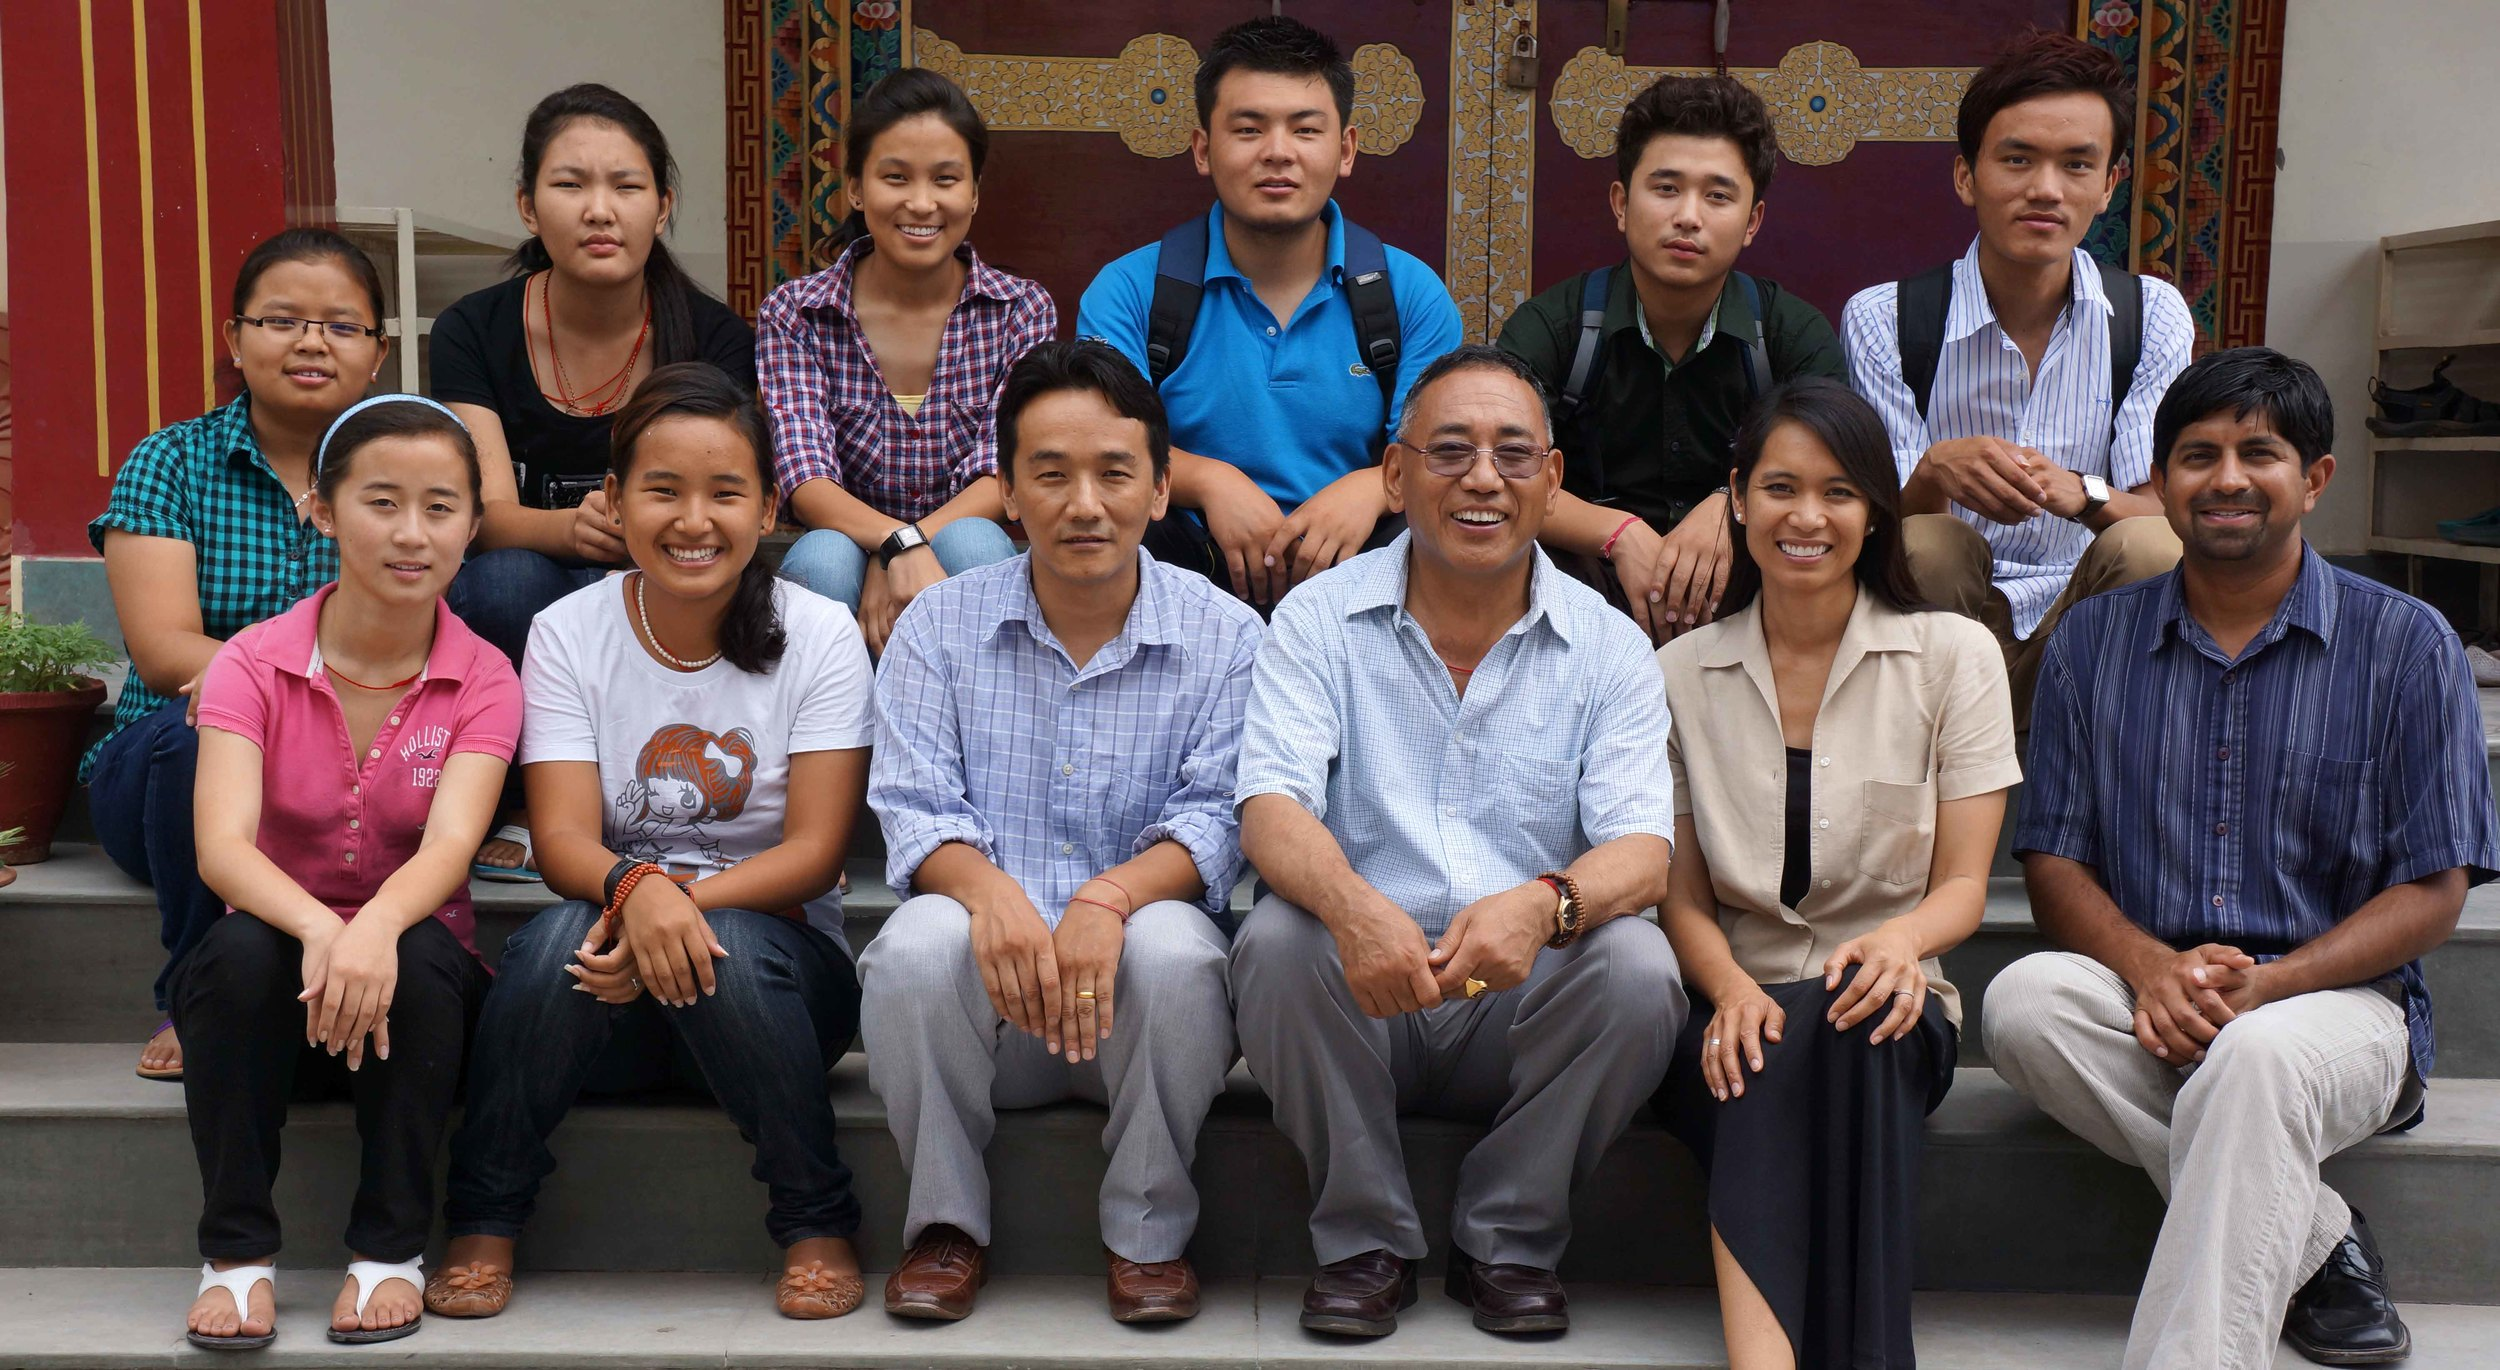 Ana Rowena McCullough sitting with a group of Tibetan students and others